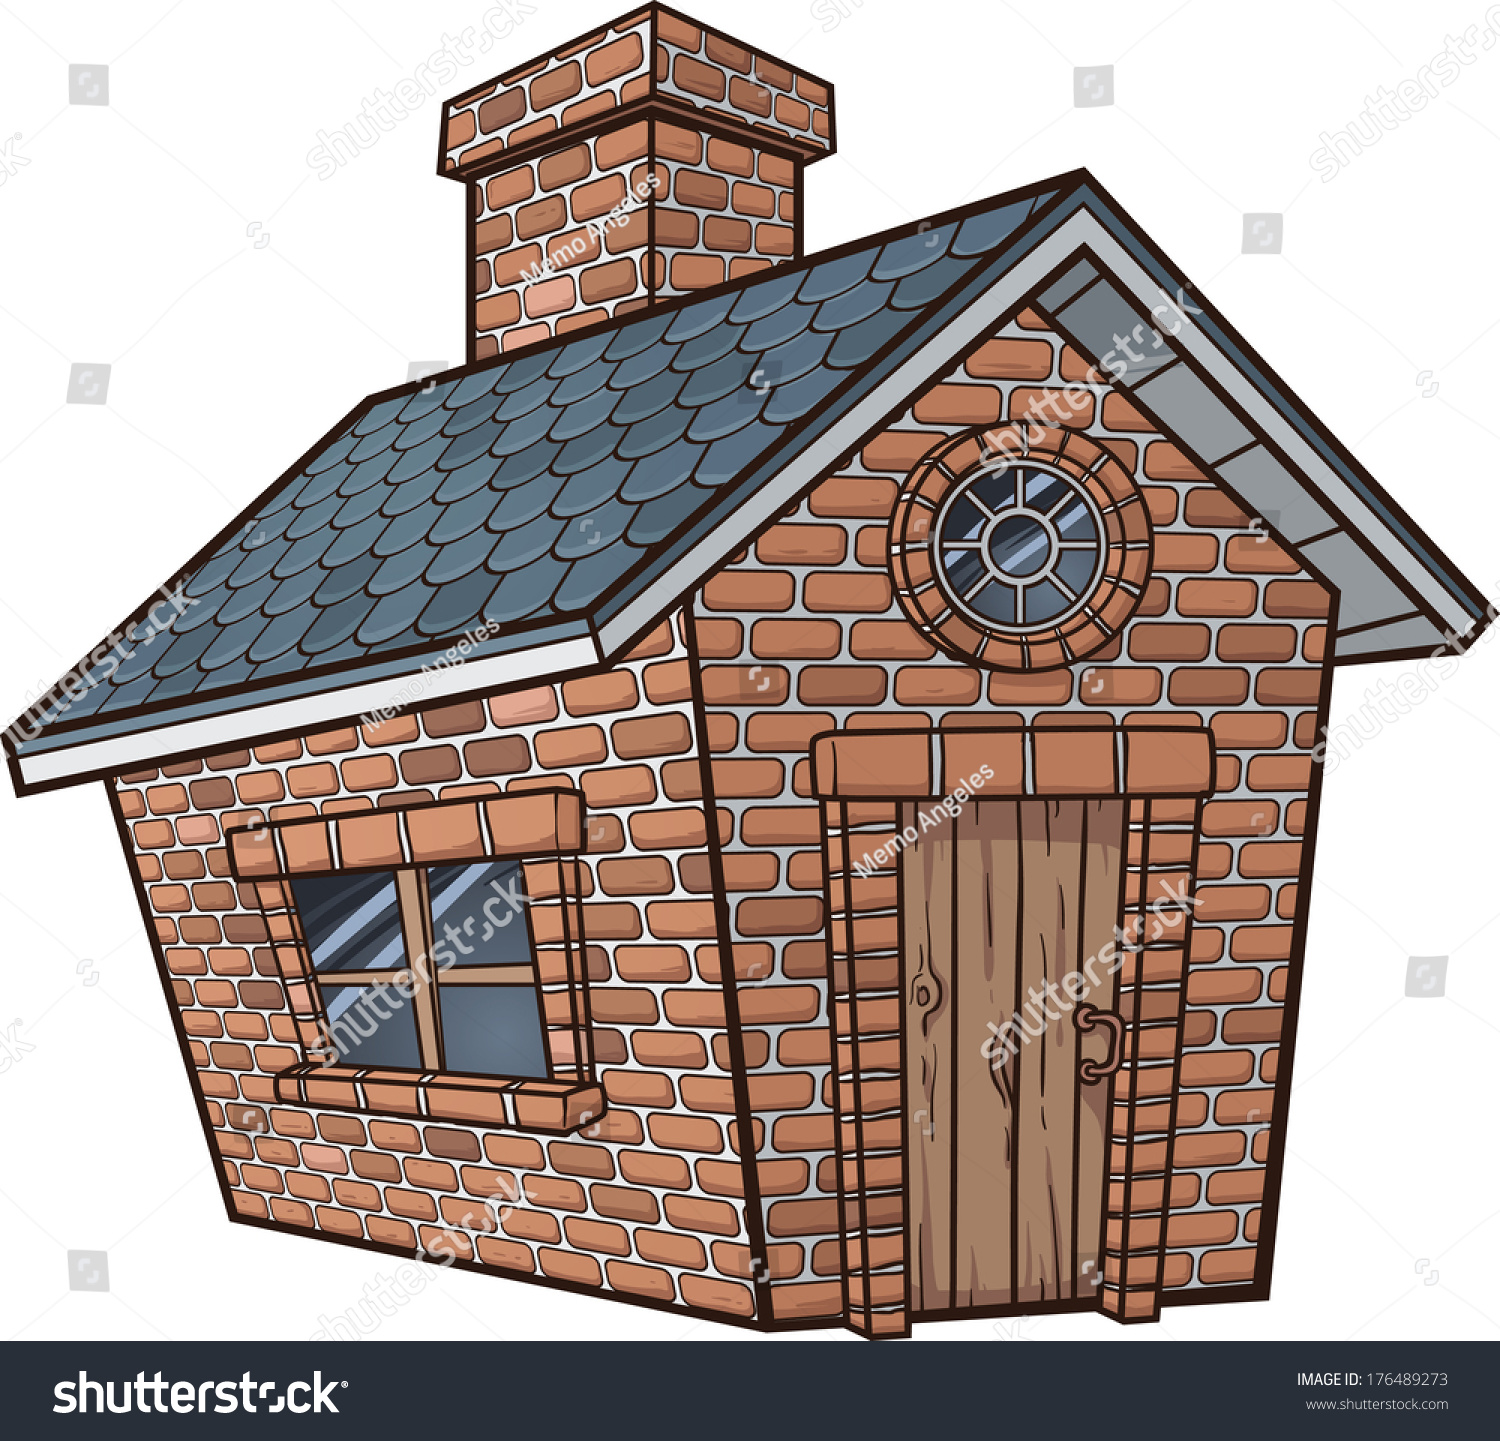 Little Brick House Vector Clip Art Illustration With Simple Gradients All In A Single